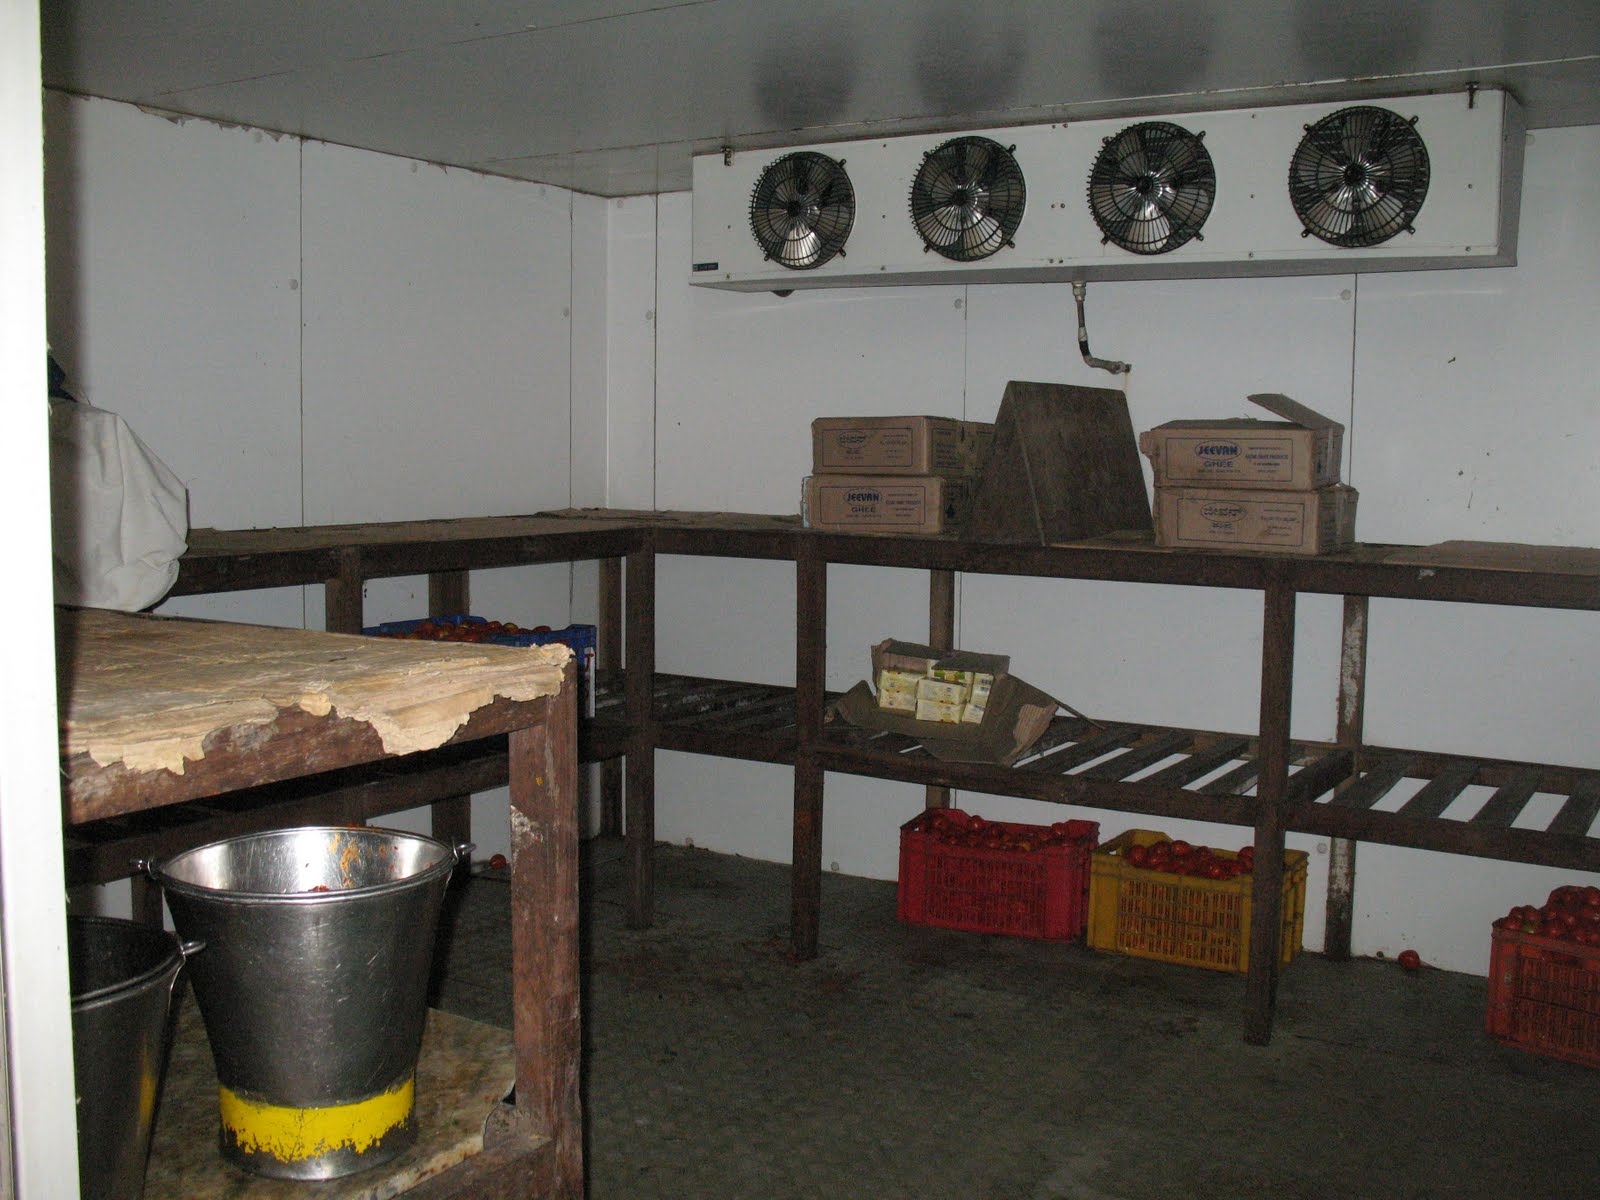 Storeroom of Sera Je Kitchen